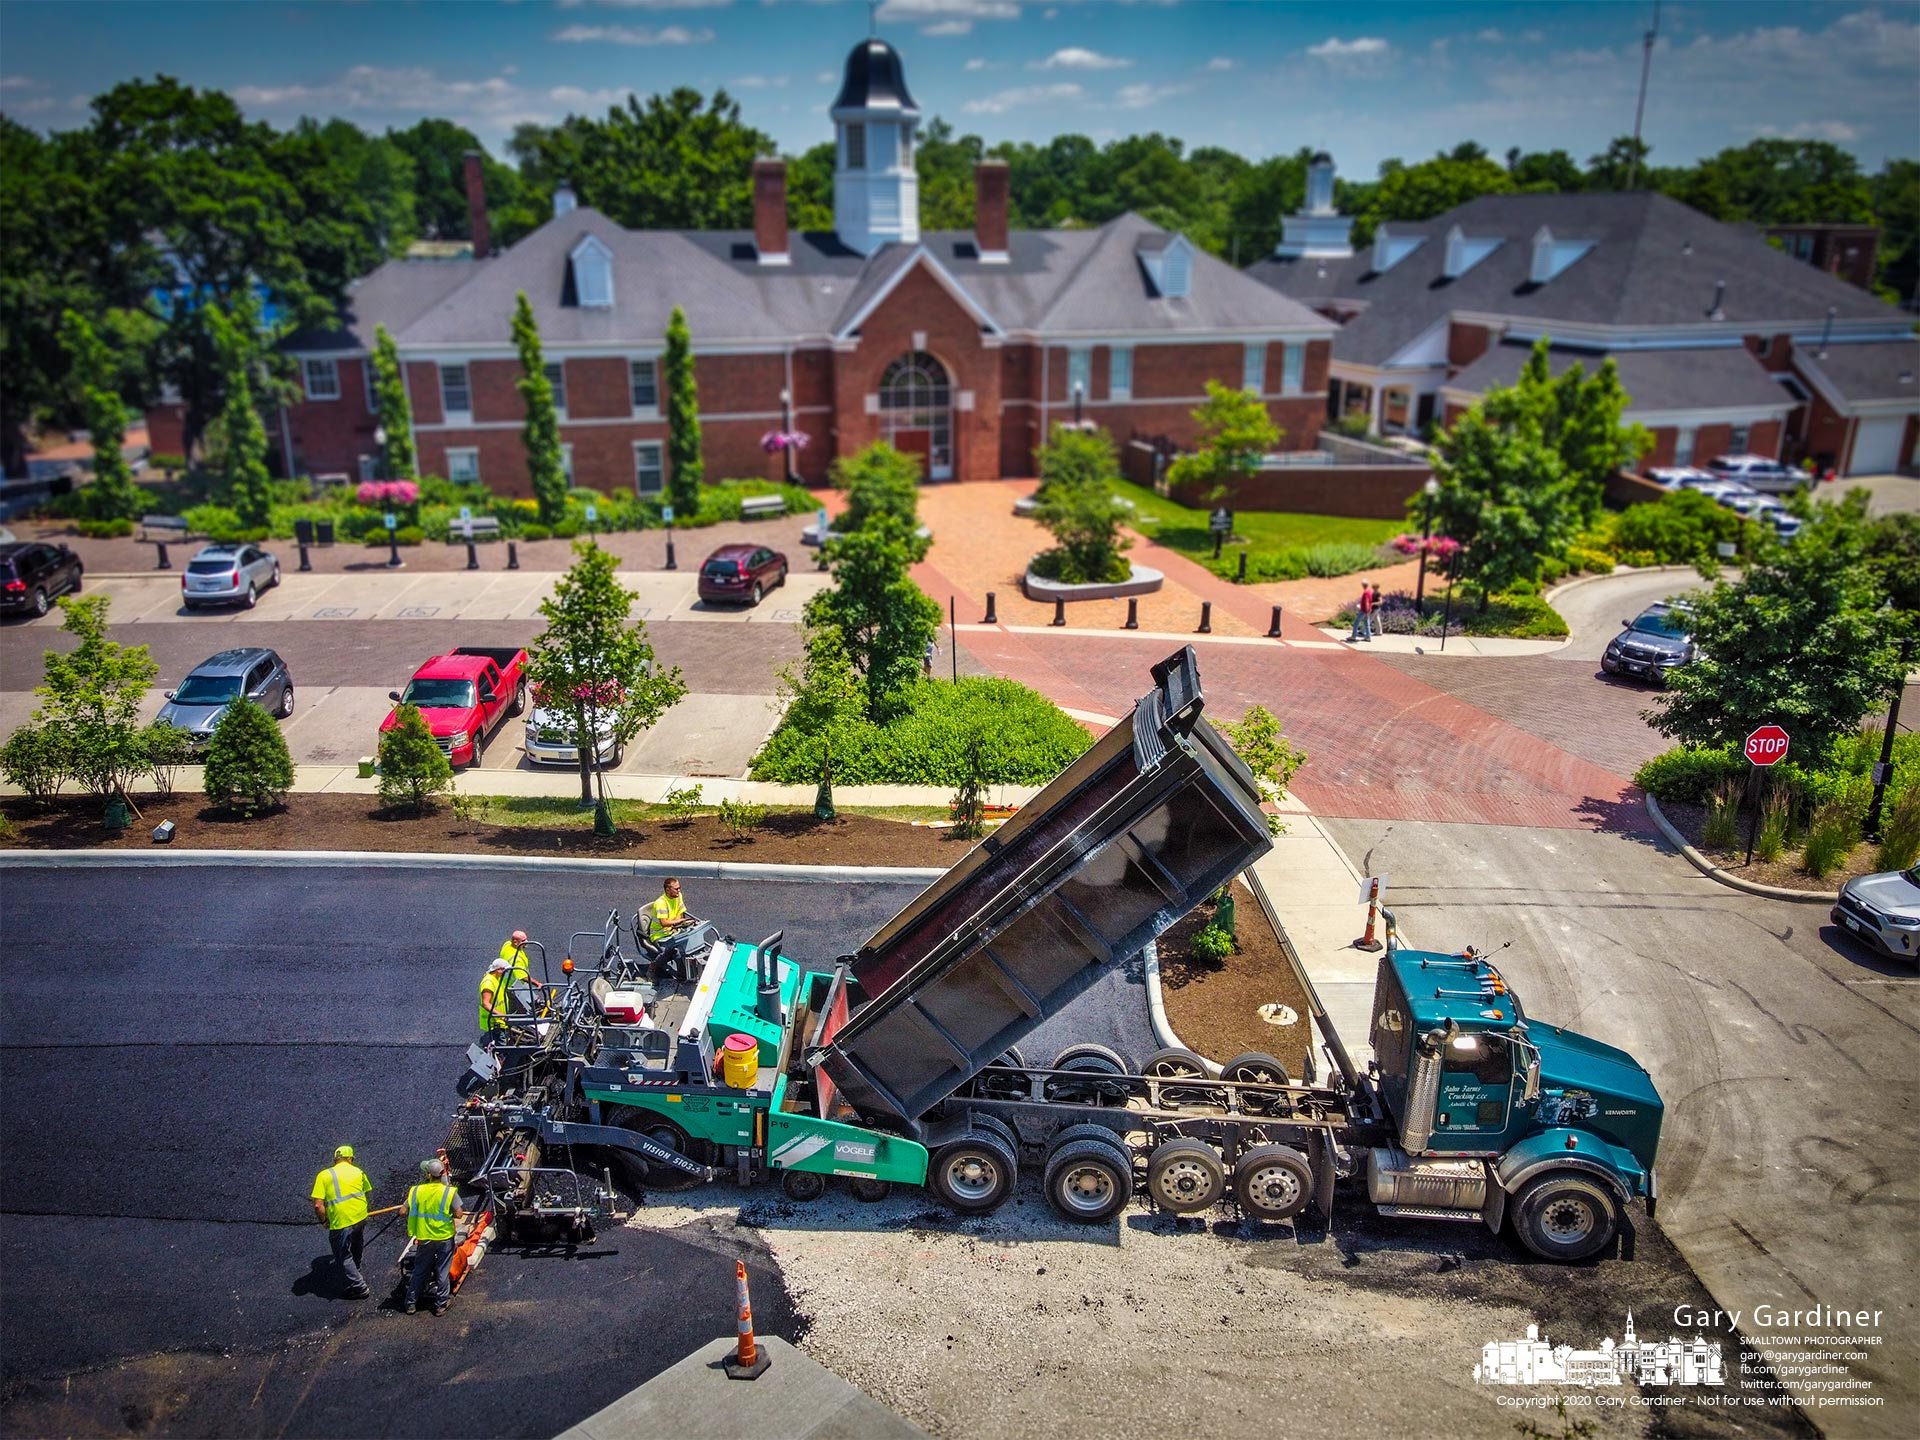 Contractors finish laying the first level of what will be six inches of asphalt to the new parking lot behind city hall. My Final Photo for June 14, 2021.